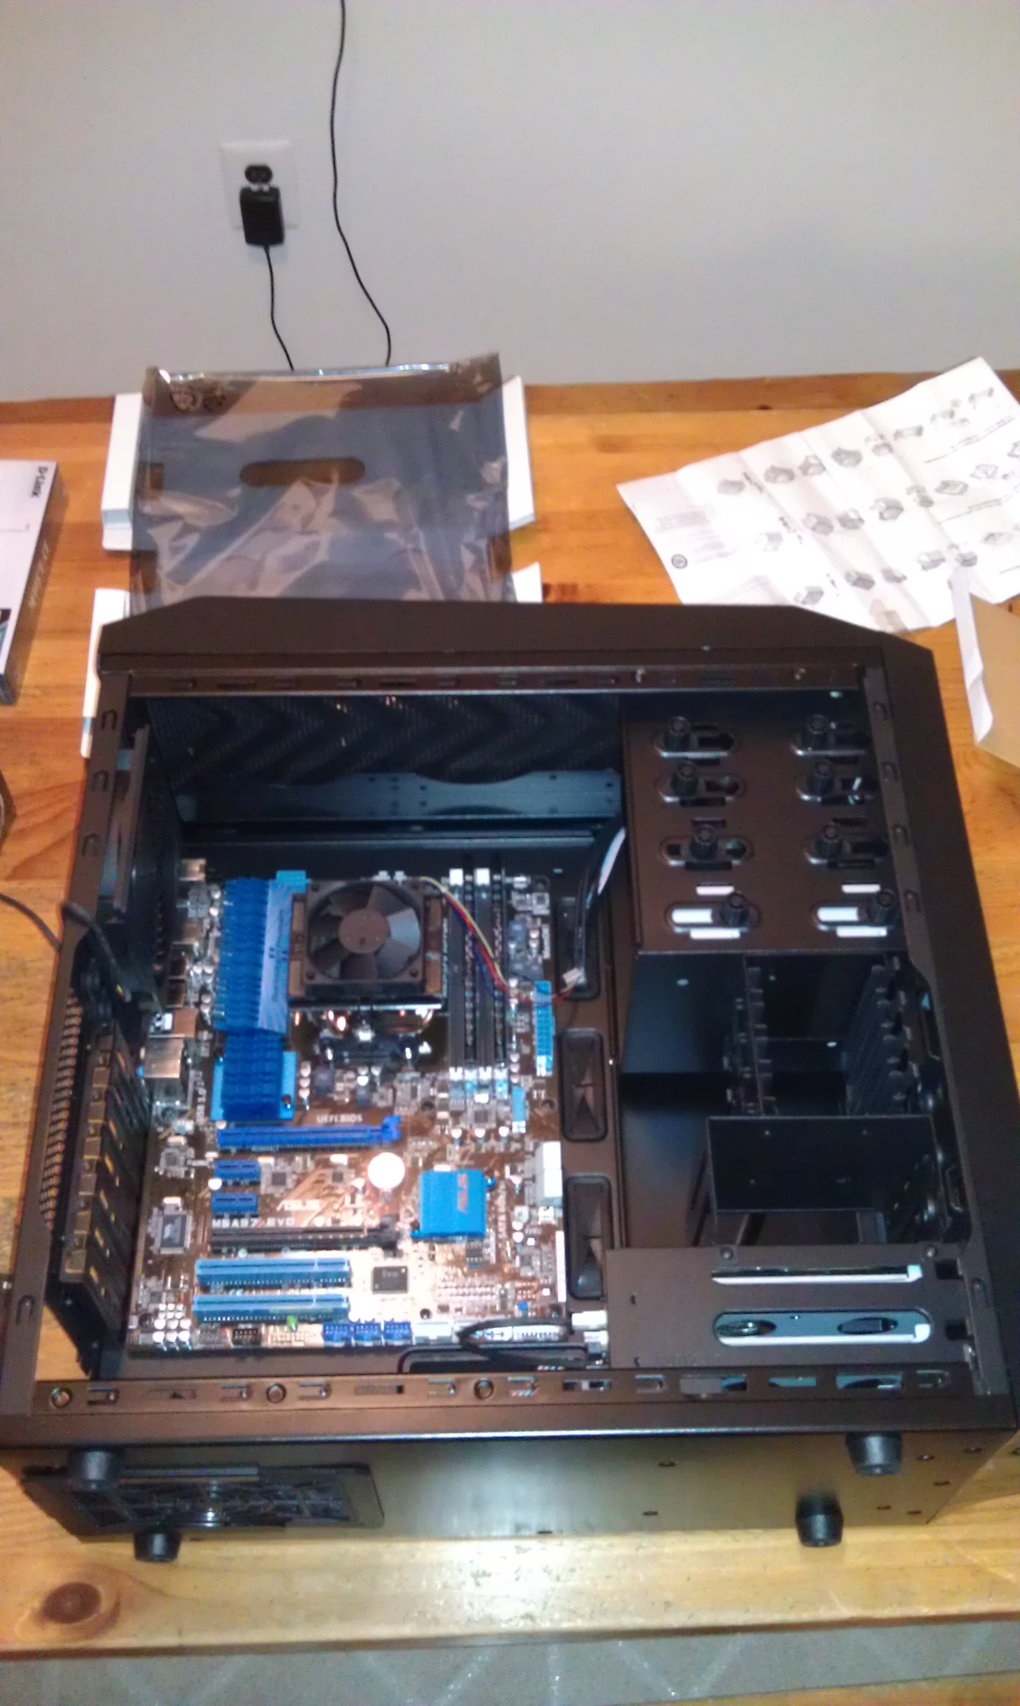 imag0368 - my new computer build